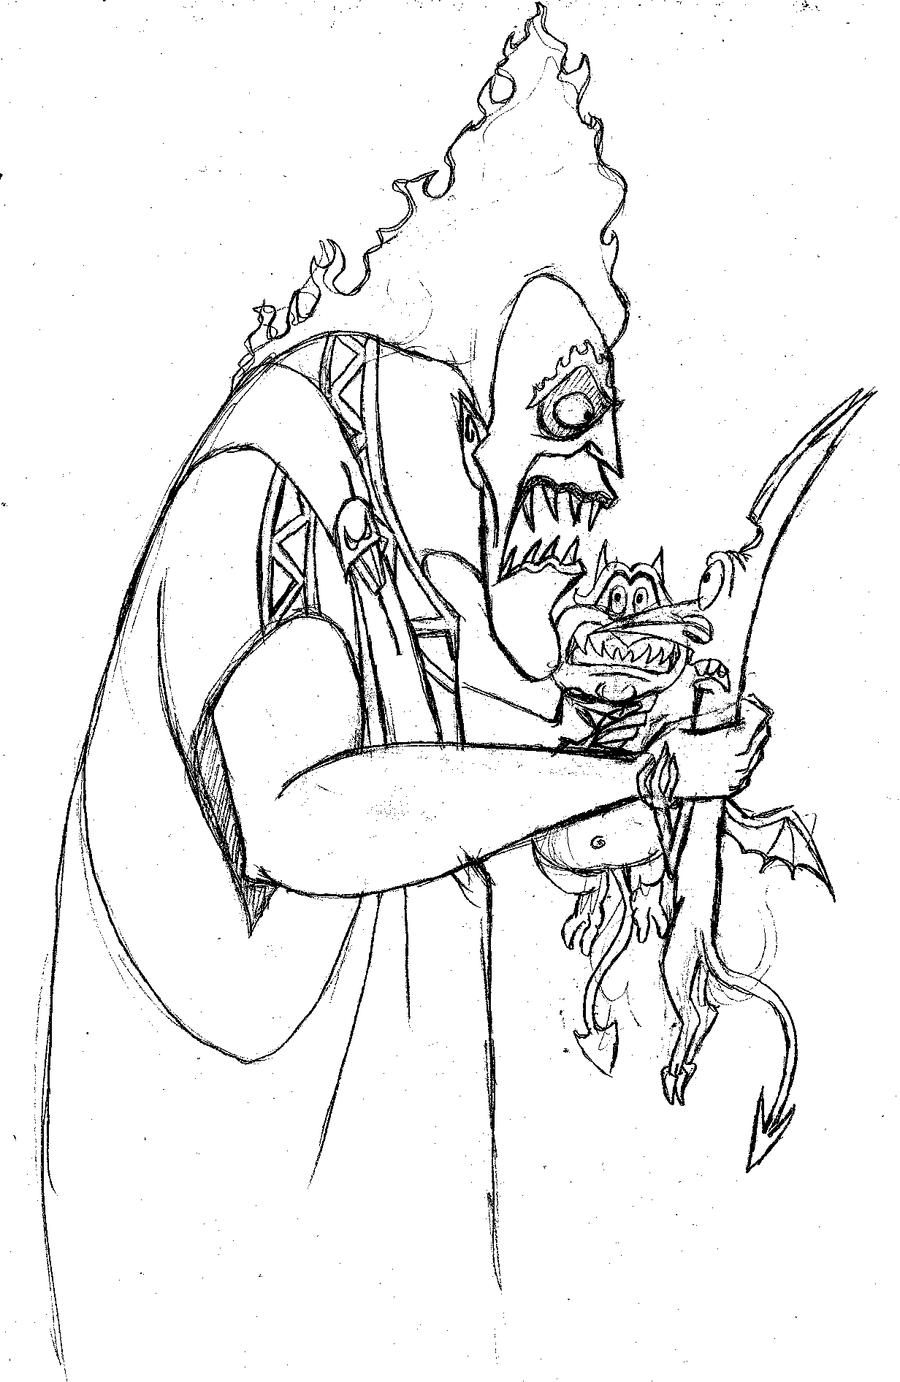 Disney hades coloring page -  Hatedlove6 Hades Pain And Panic By Hatedlove6